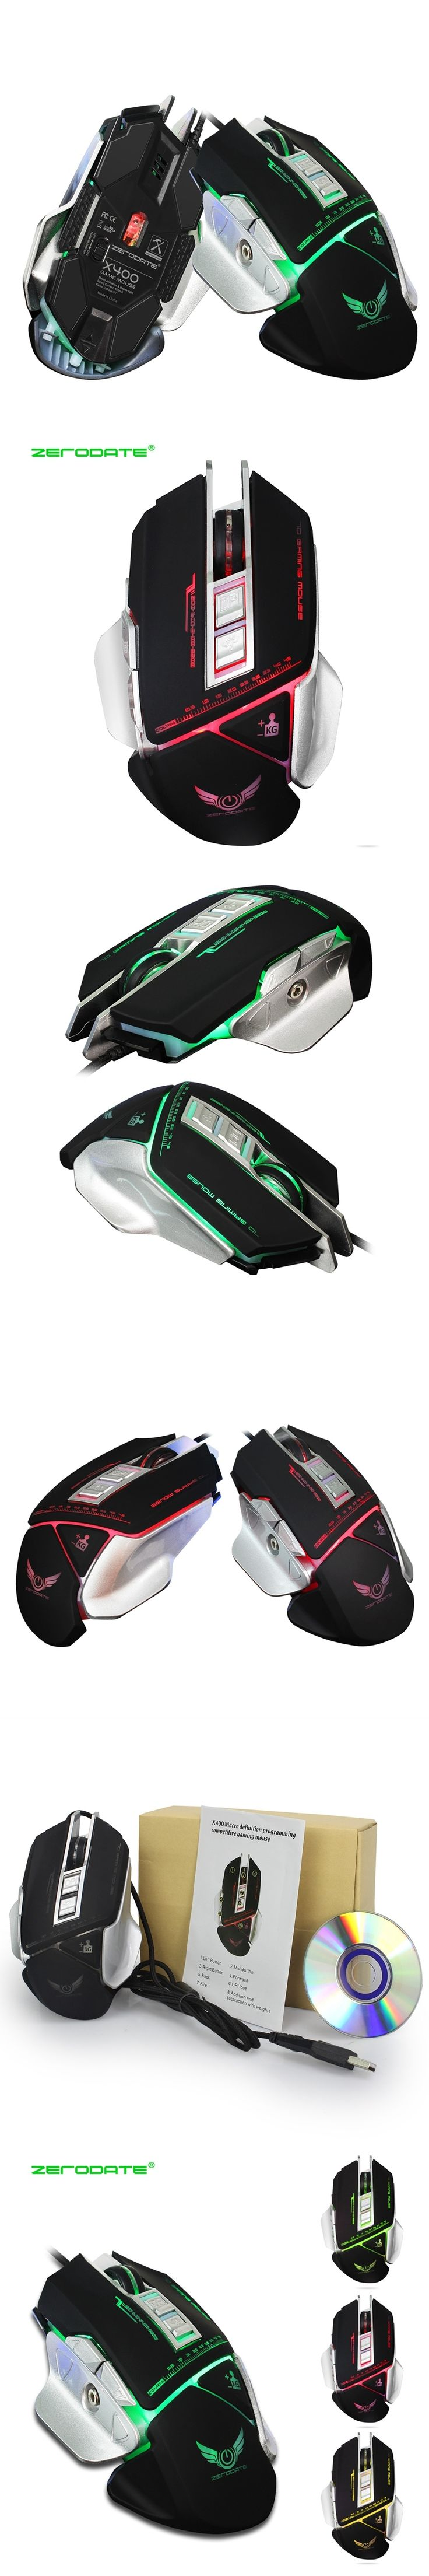 Computer Gaming Mouse Mechanical Mouse Macros Define USB Wired Optical Mouse 3200DPI 7 Button LED Game Mouse PC Gamer for Laptop